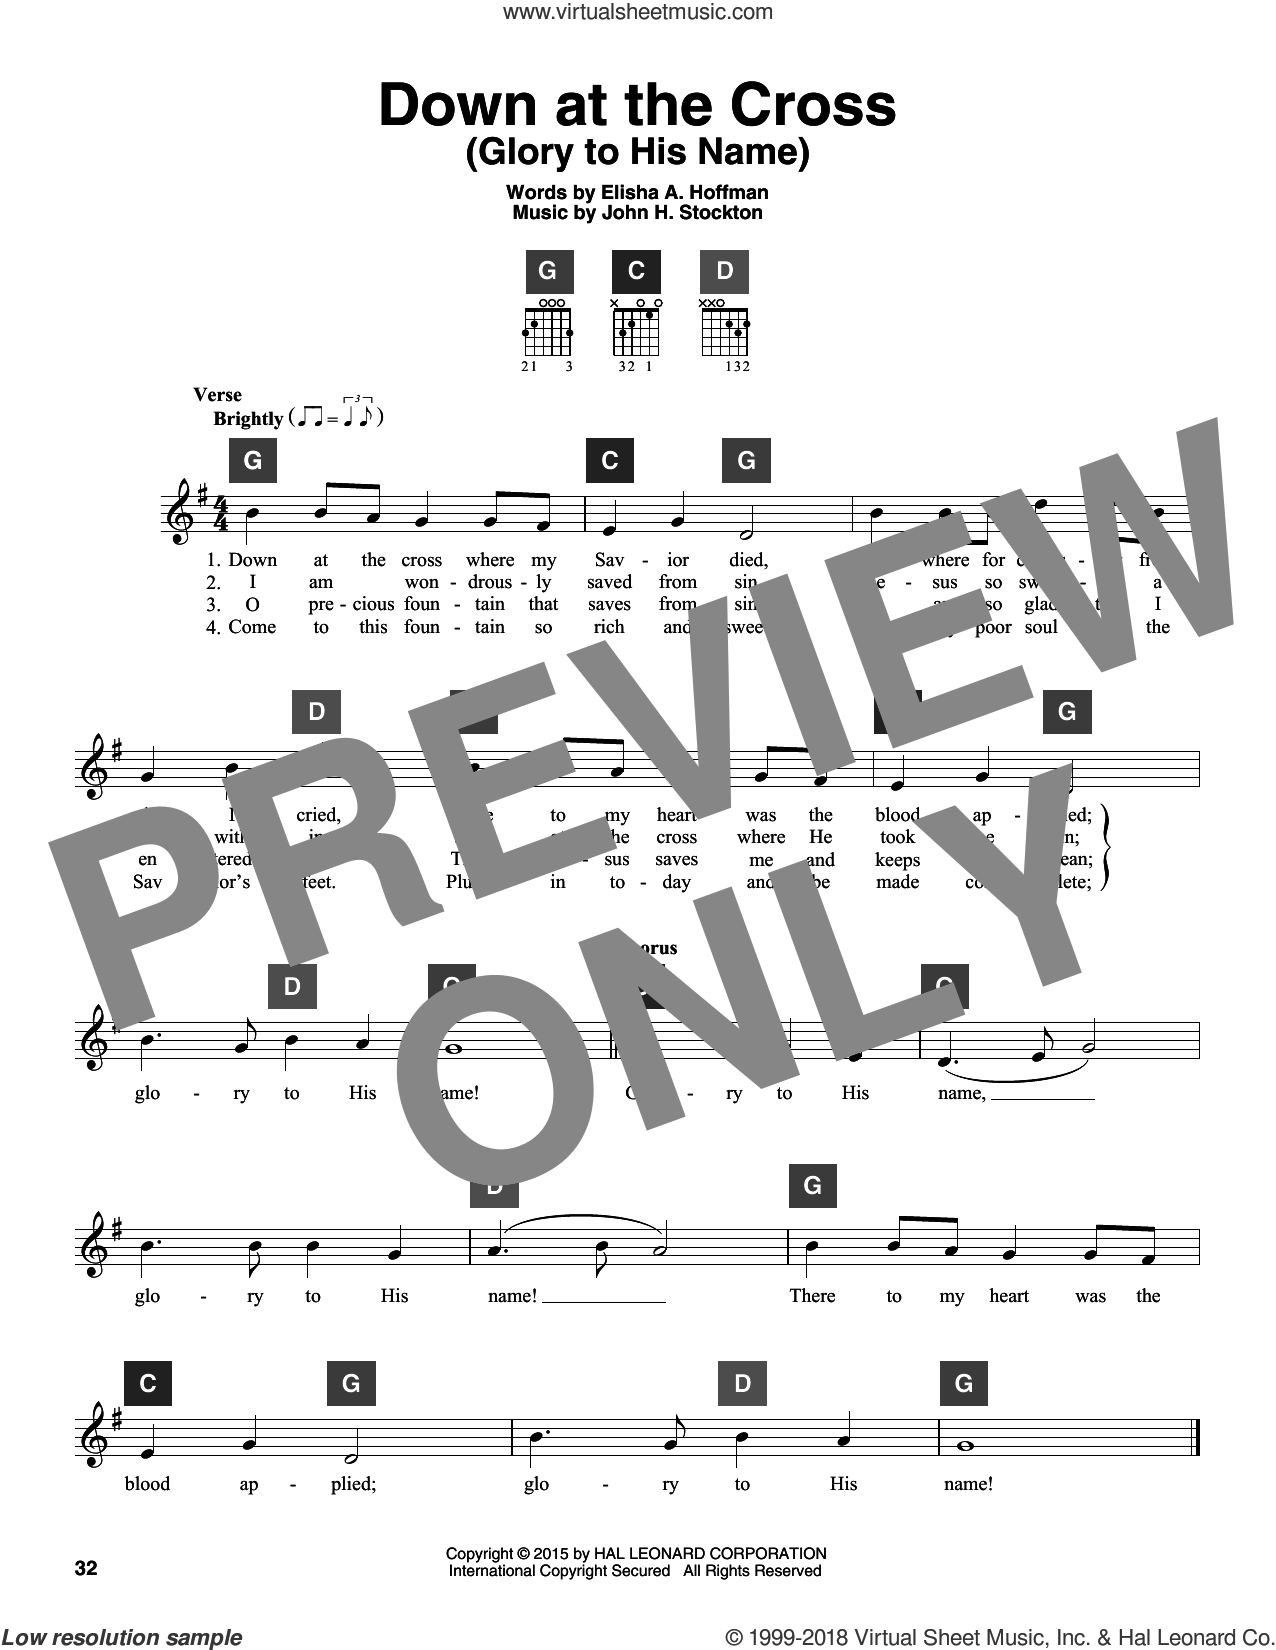 Down At The Cross (Glory To His Name) sheet music for guitar solo (ChordBuddy system) by John H. Stockton and Elisha A. Hoffman. Score Image Preview.